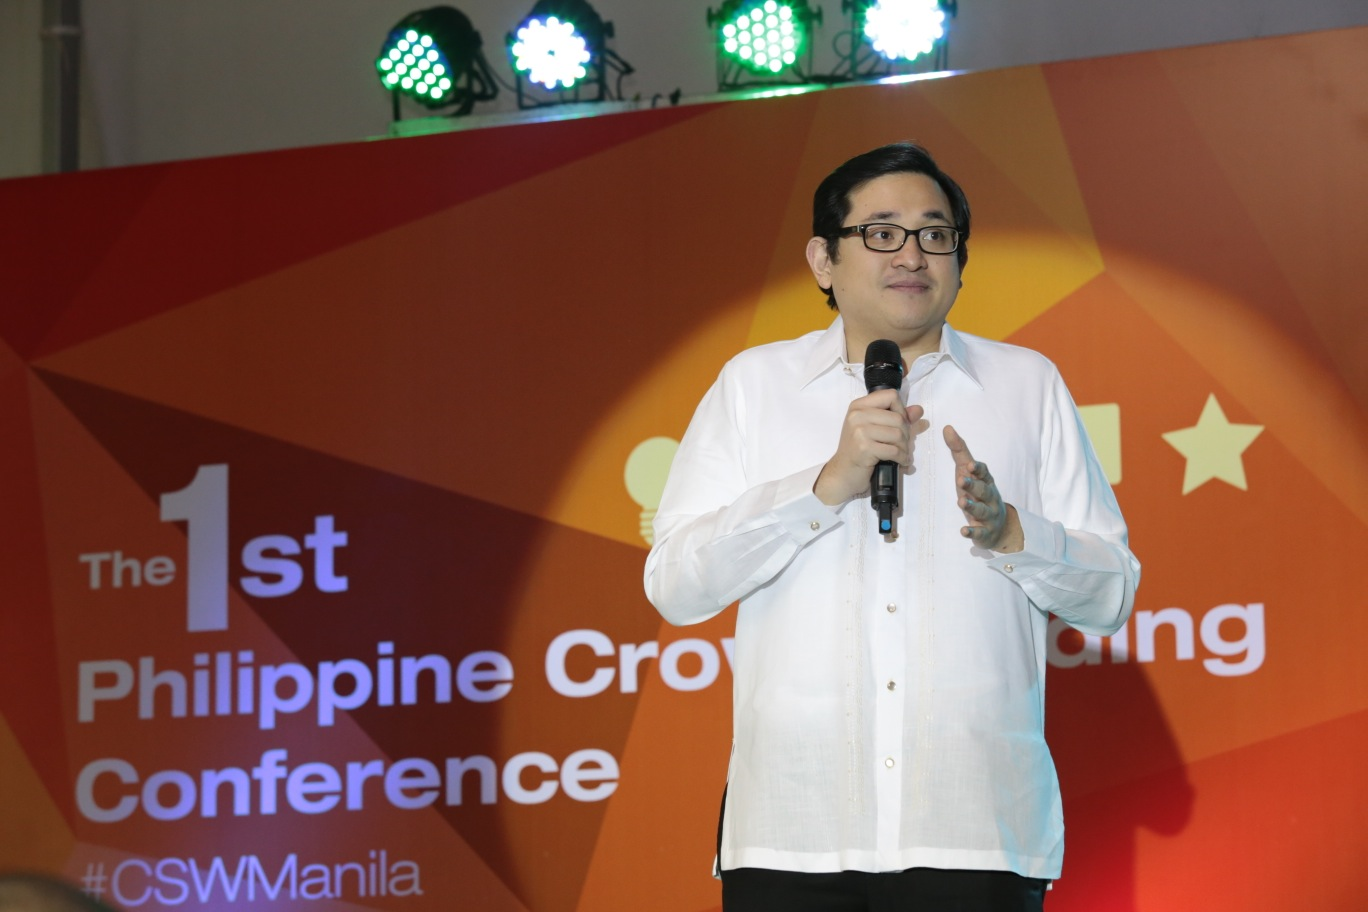 The Country's First-Ever Crowdfunding Conference Held at Enderun Colleges